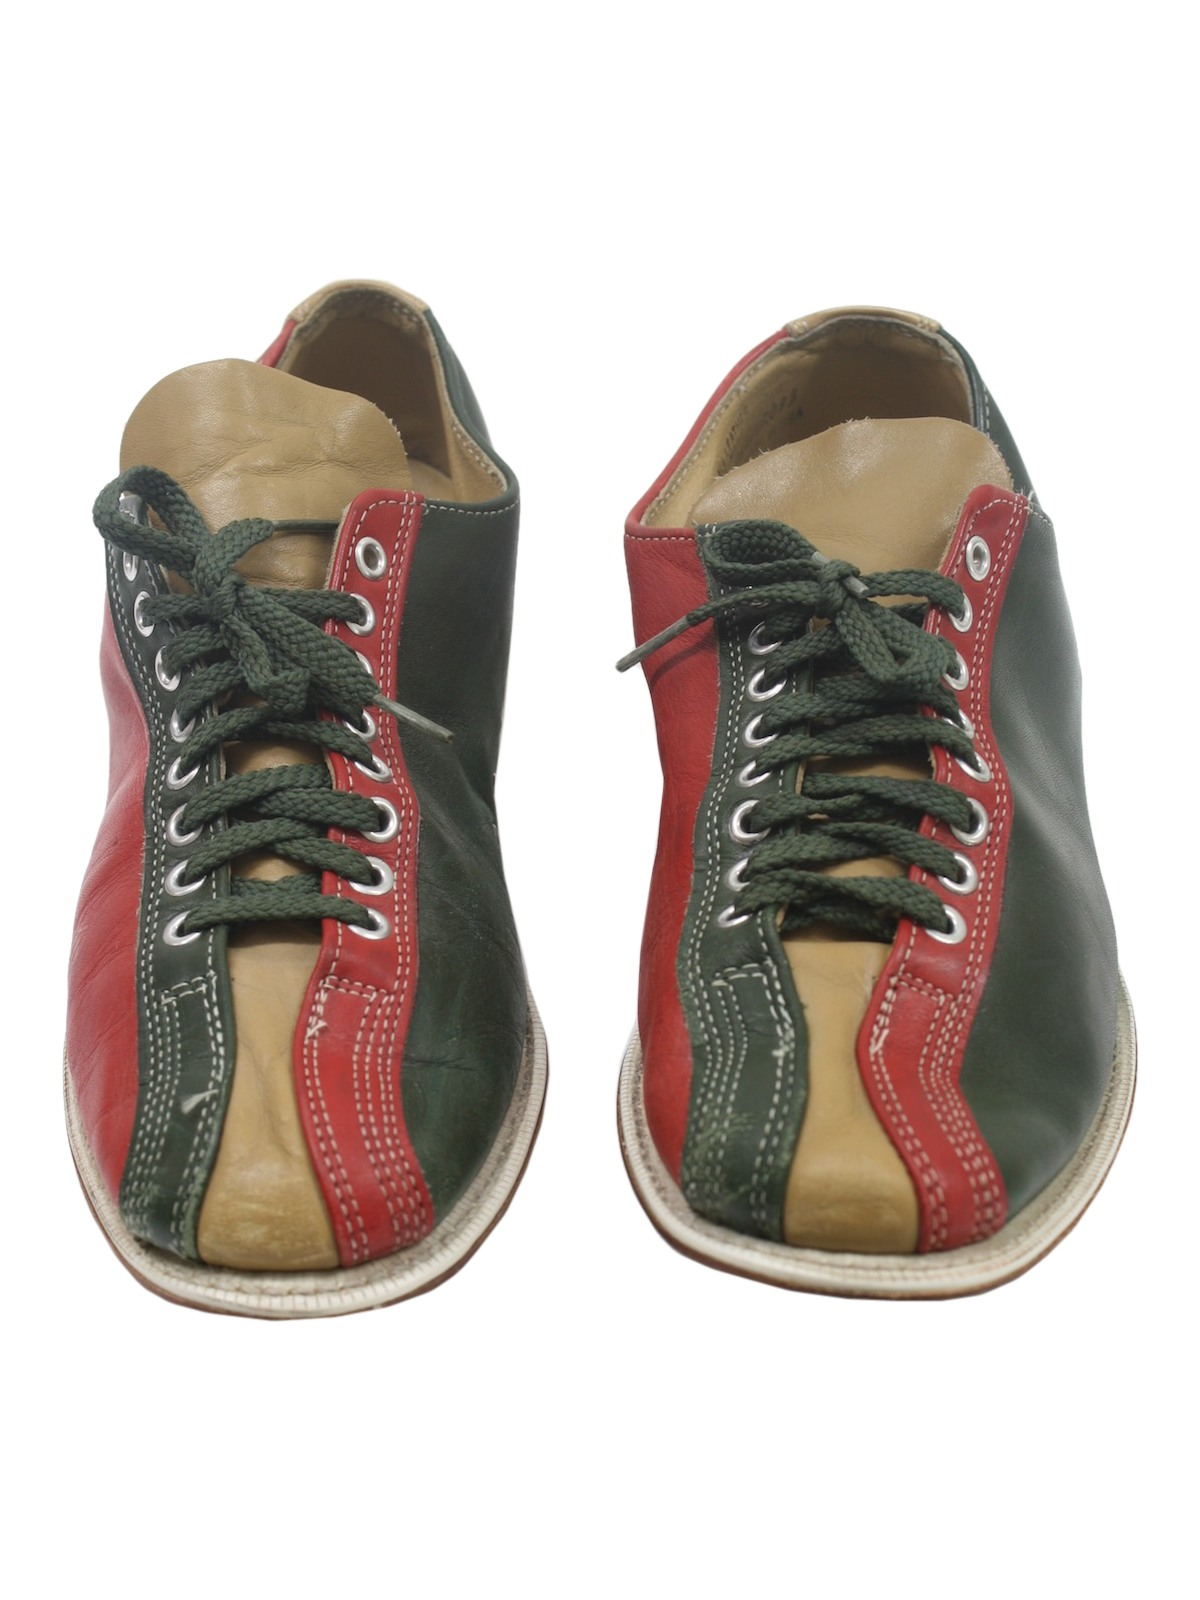 No Label Sixties Vintage Shoes: 60s -No Label- Mens red, green ...